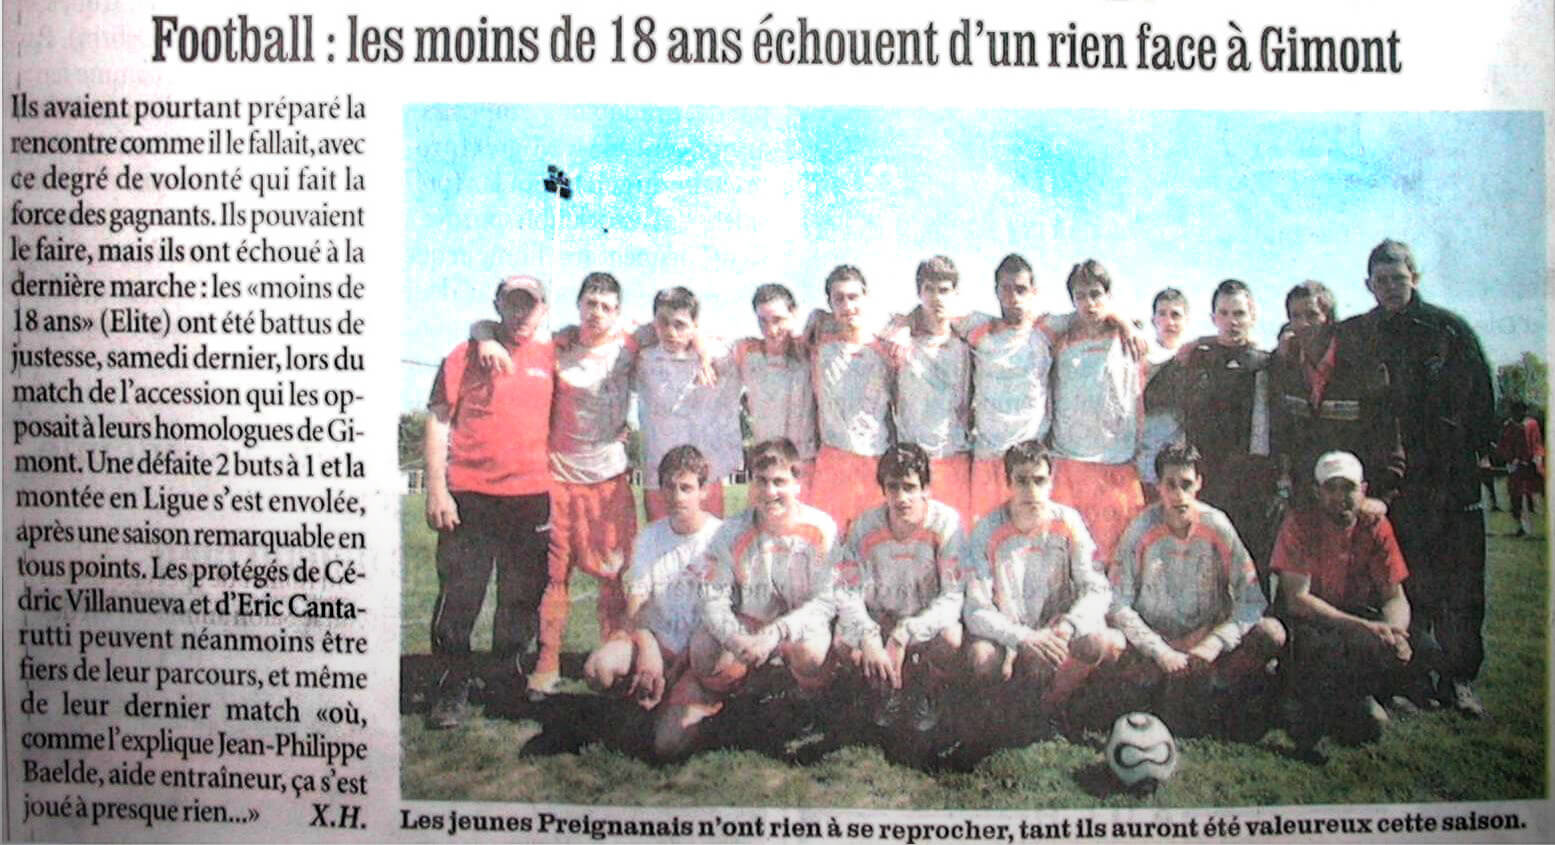 SCP 2007-2008 - 18 ans - EVG